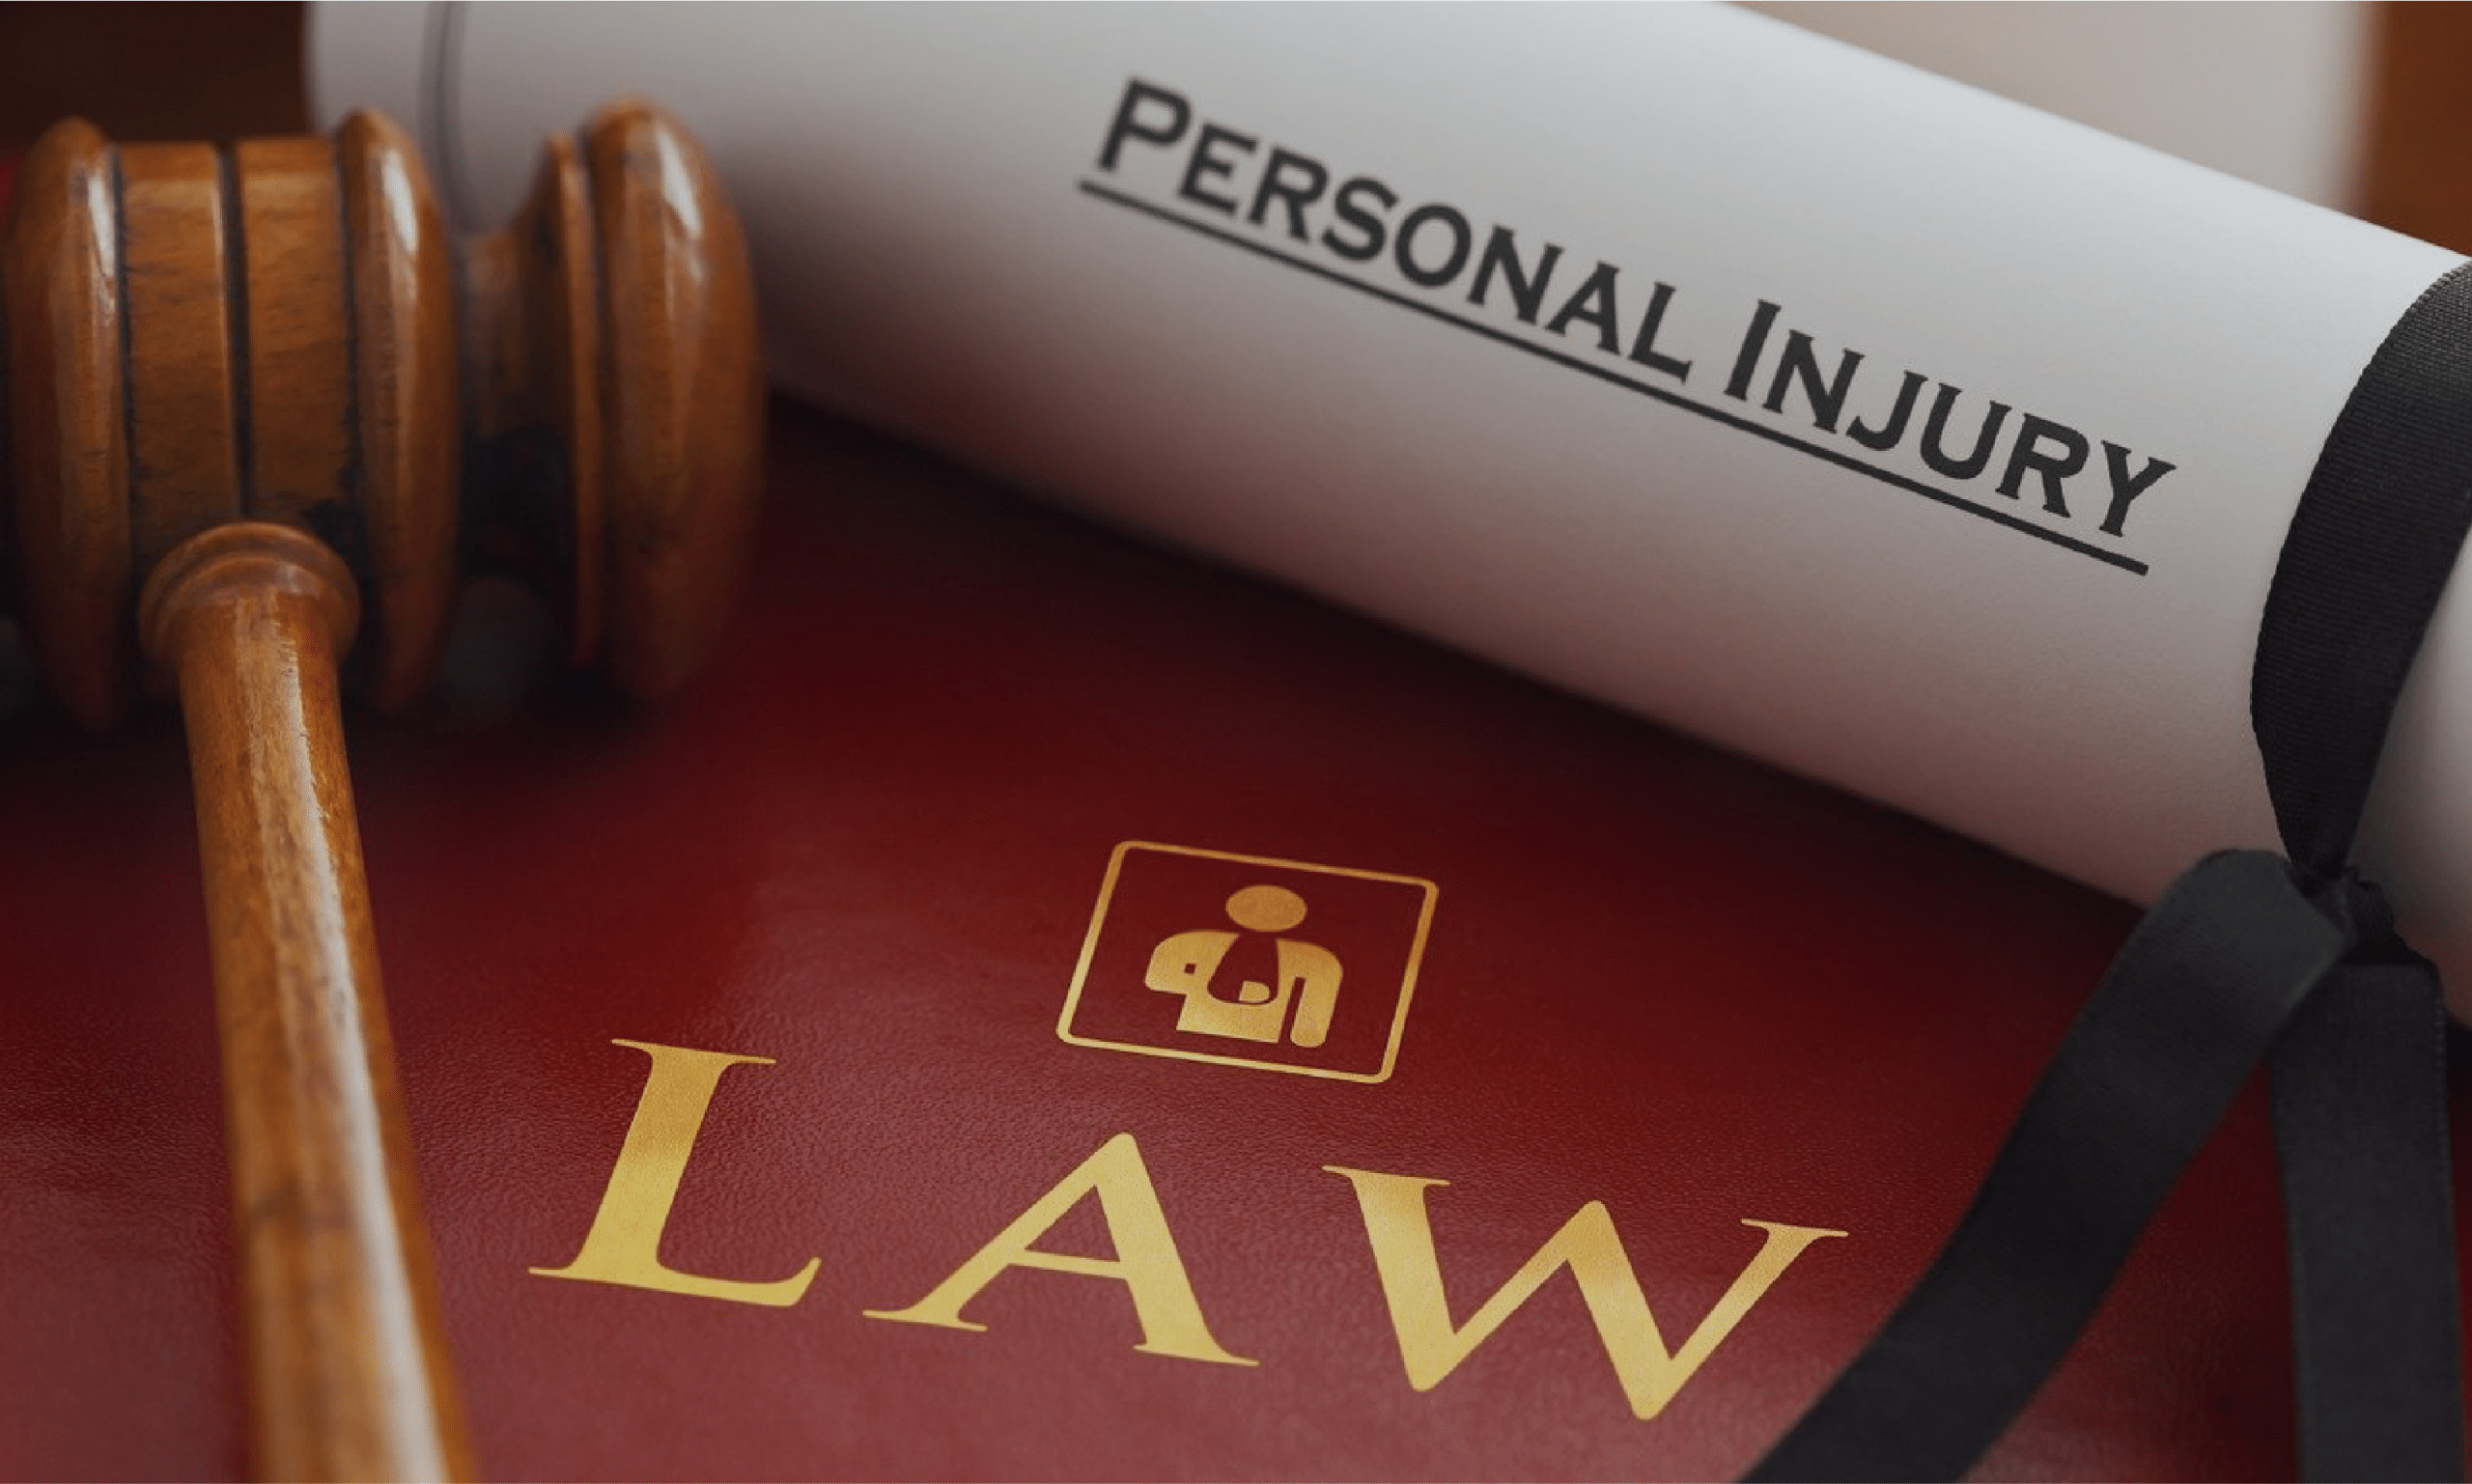 Personal injury law book with gavel